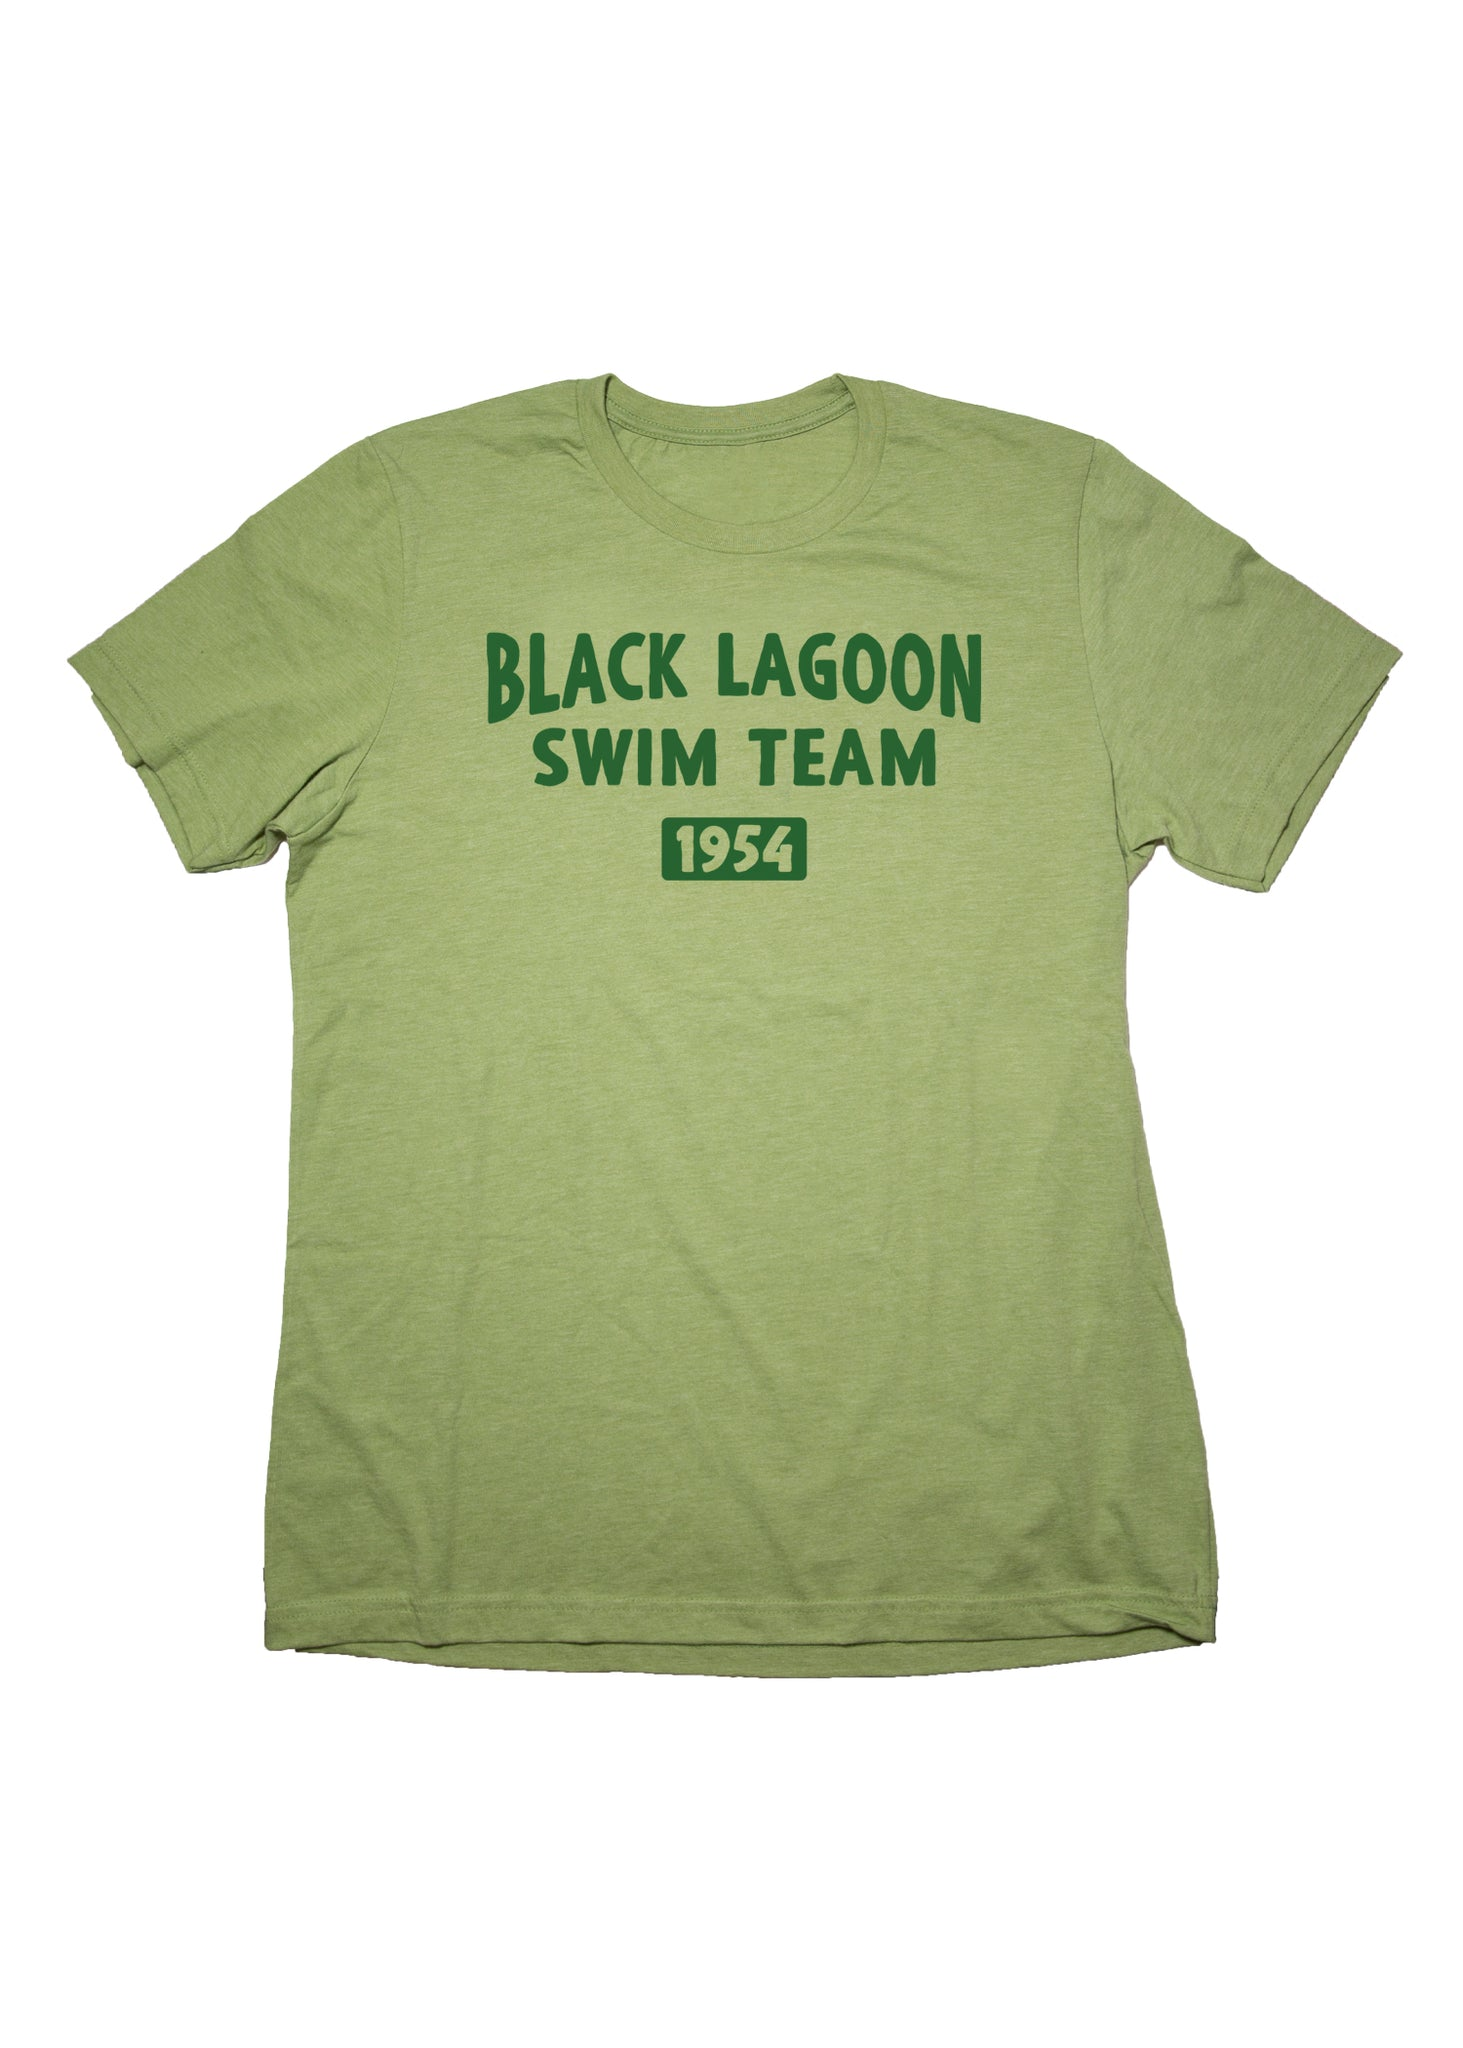 *LIMITED* Black Lagoon Swim Team Unisex Adult T-Shirt in Heather Green